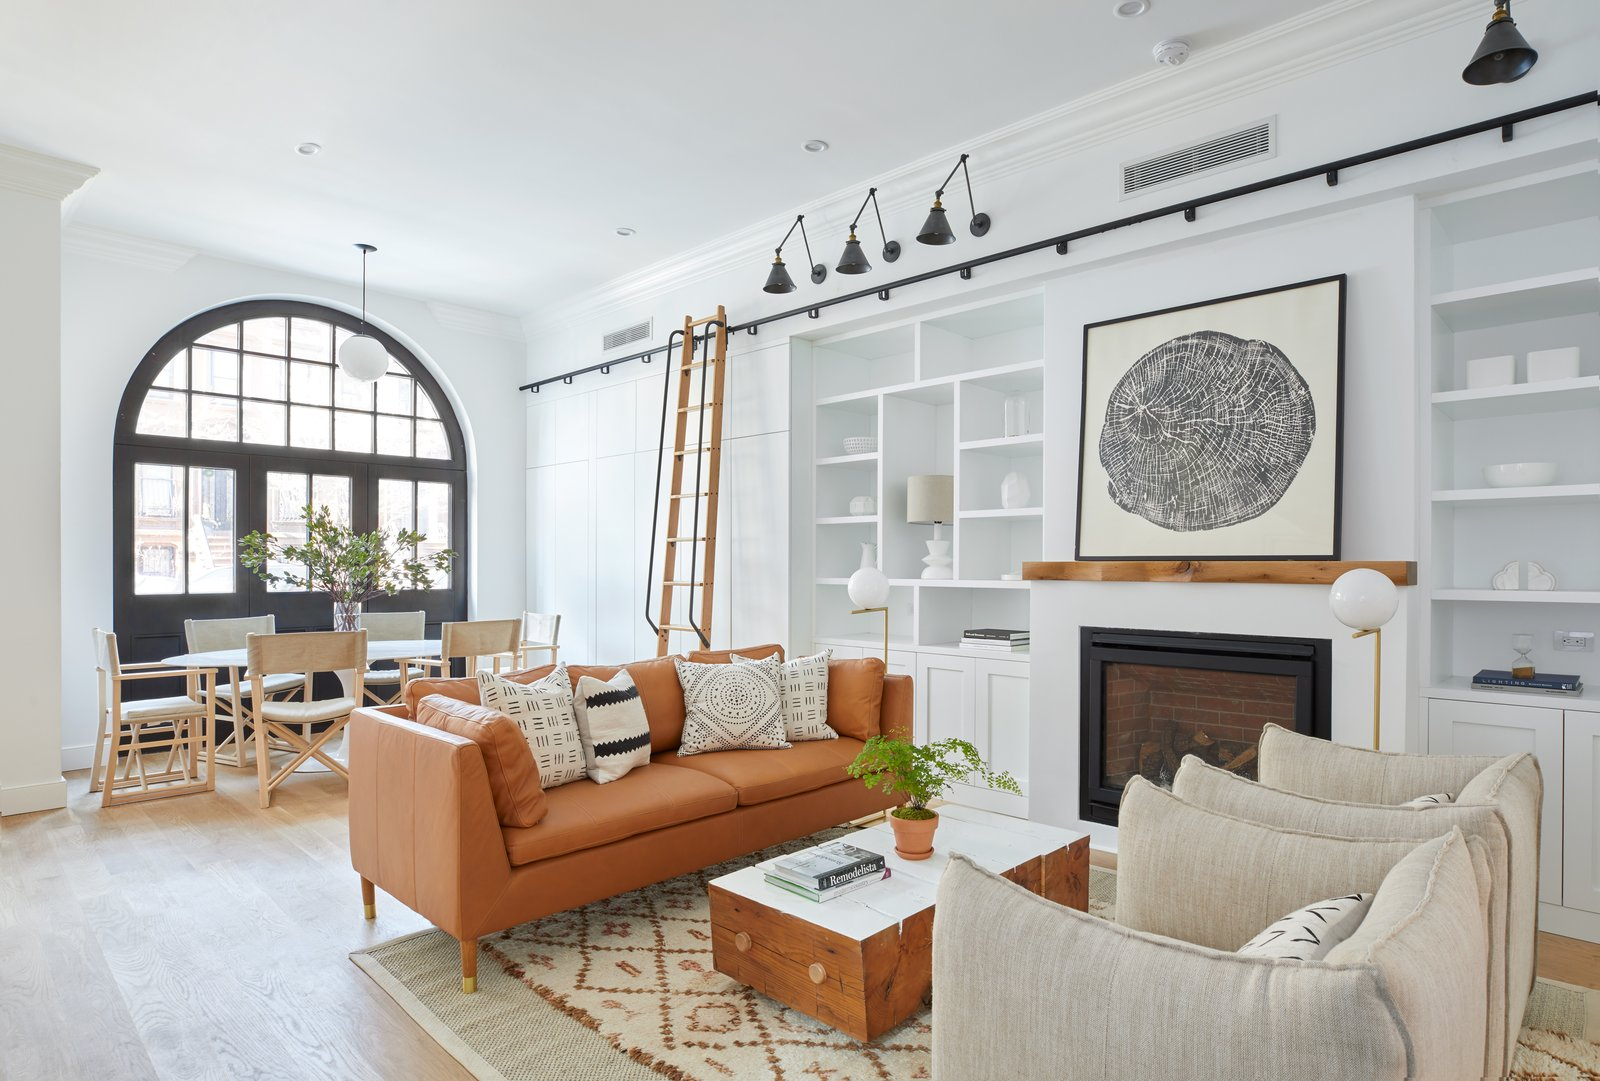 Living, Accent, Track, Light Hardwood, Sofa, Bookcase, Coffee Tables, Chair, Pendant, Gas Burning, and Ceiling The light-filled, lovely living room of 411 Vanderbilt.  Best Living Pendant Gas Burning Photos from Two Renovated Carriage Houses in Brooklyn Hit the Market